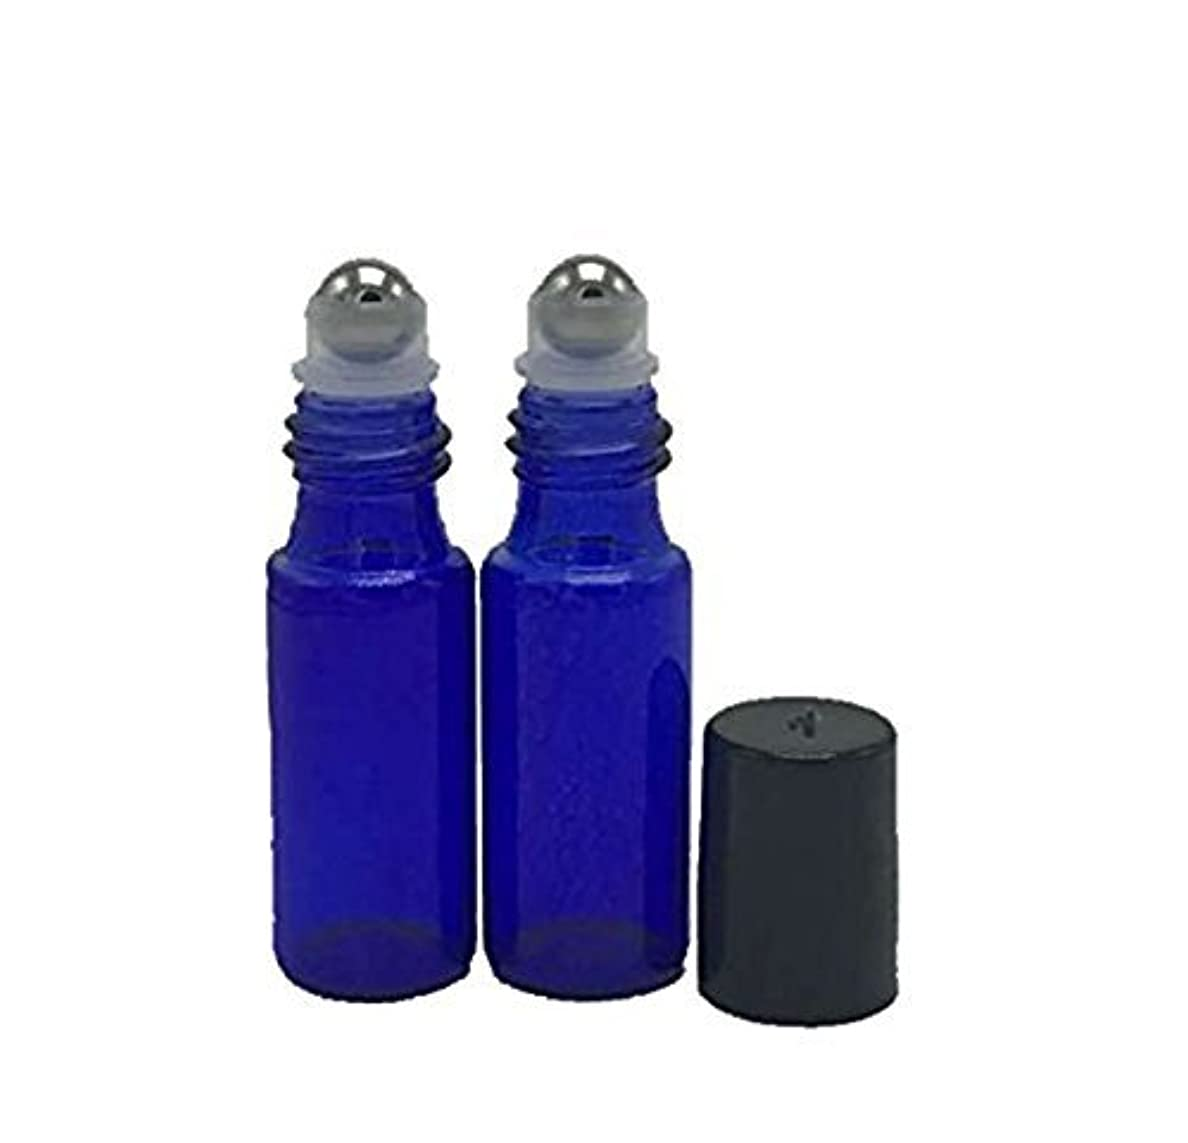 Haifly 12 Pcs 5 ml Empty Refillable Rollerball Glass Bottles for Essential Oil with 3 ml Dropper Blue [並行輸入品]